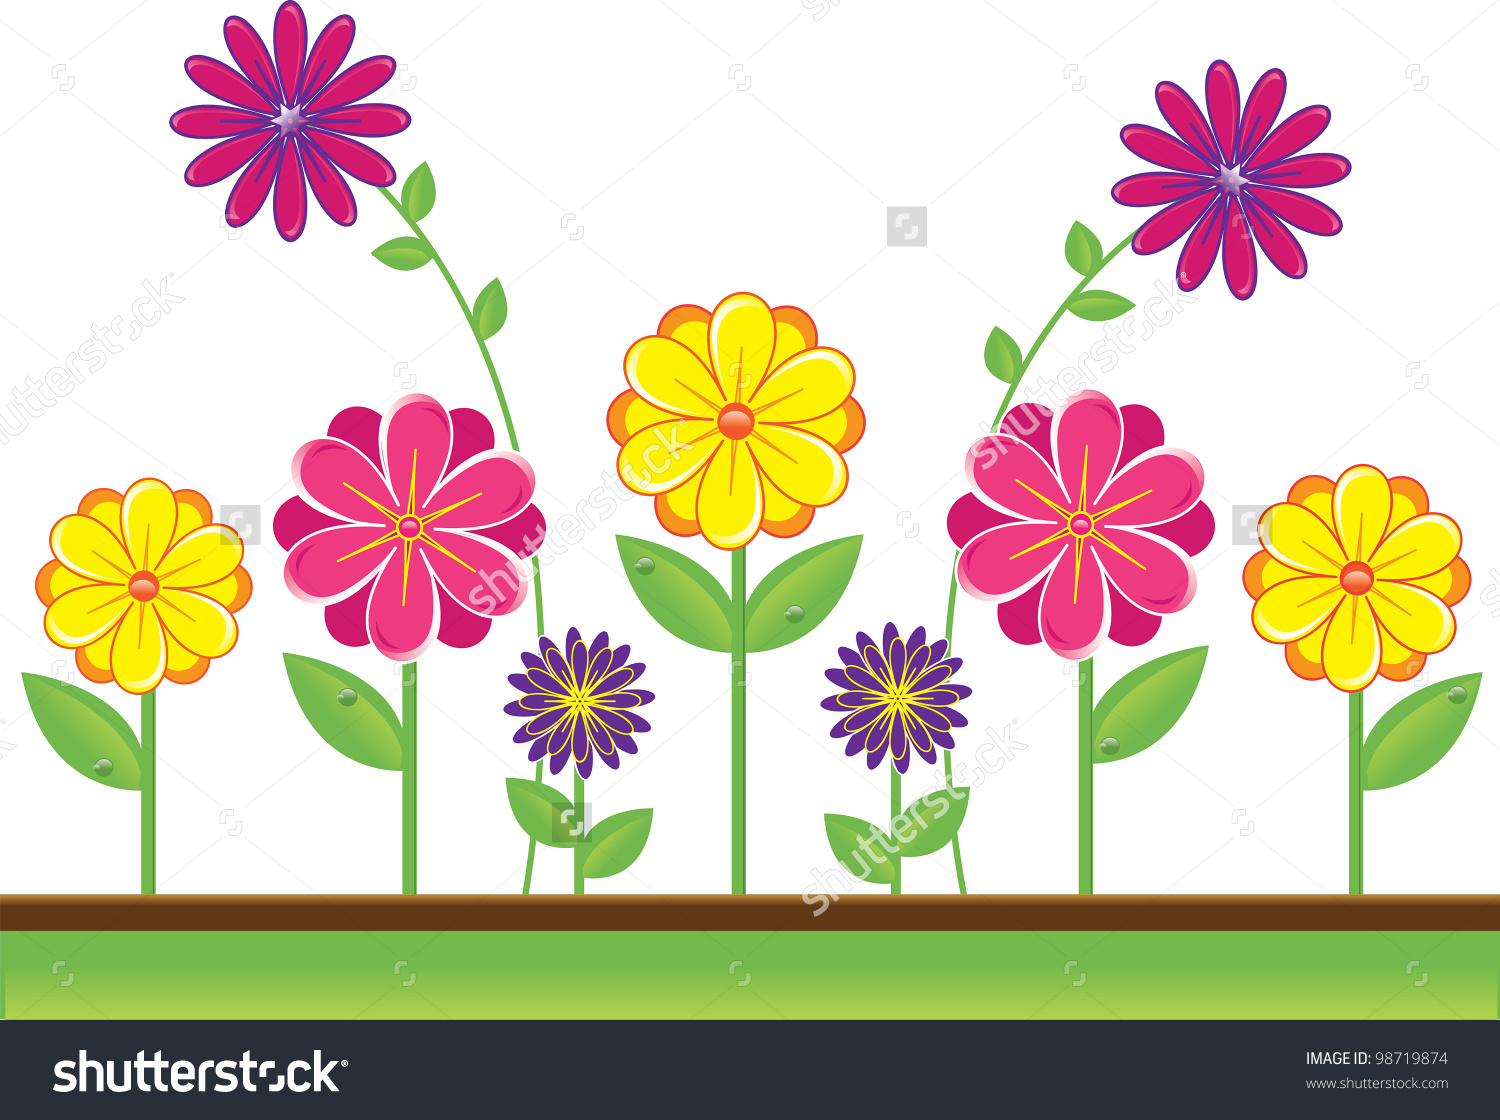 Yellow Flower clipart floral Clip collection clipart Cute floral